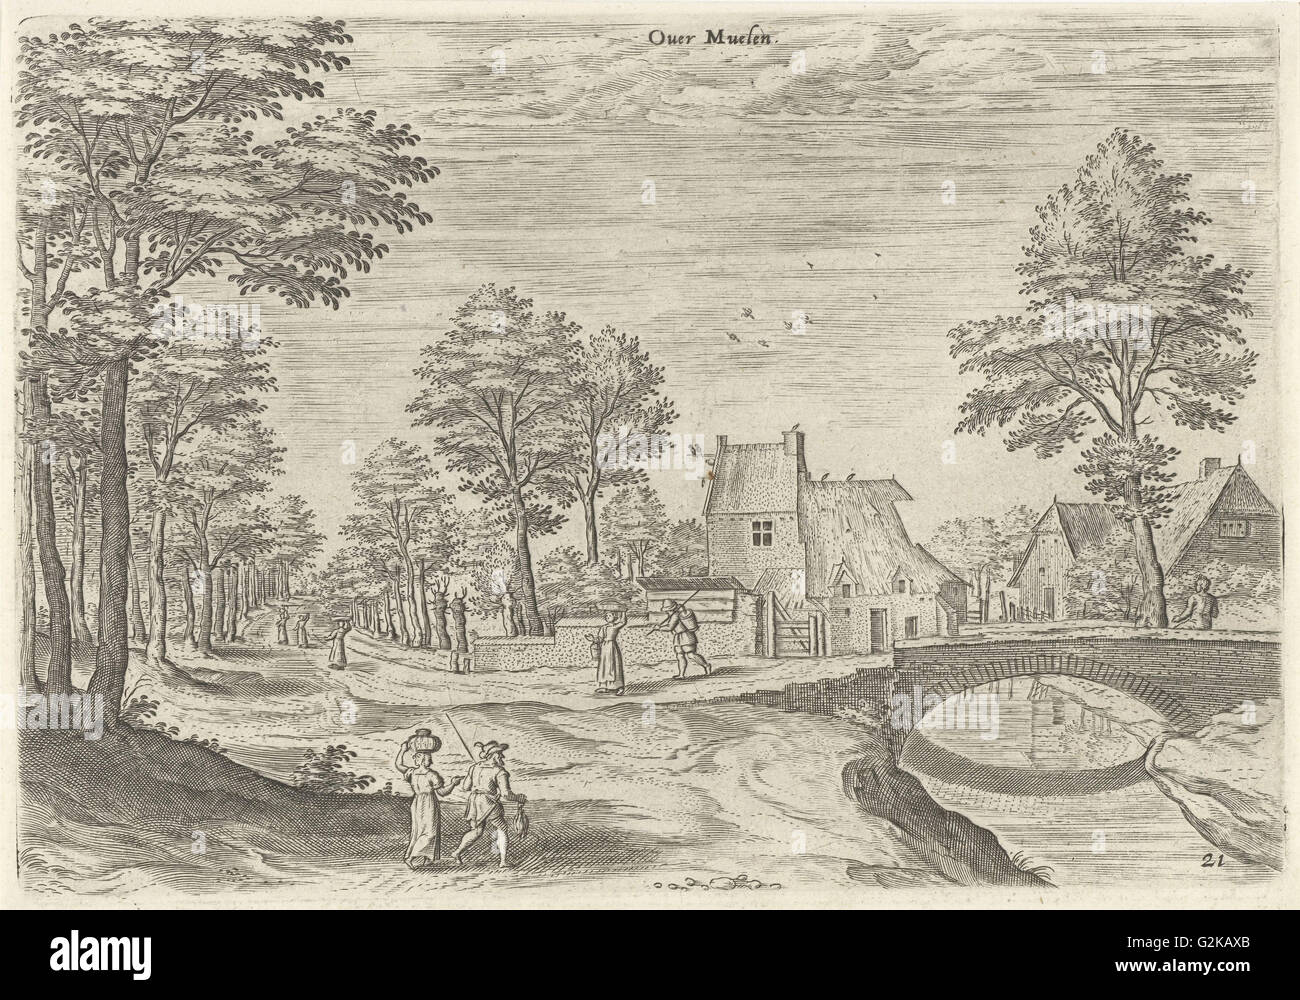 View of the road to Brussels, Belgium, print maker: Hans Collaert I, Hans Bol, Jacob Grimmer attributed to, 1530 - Stock Image